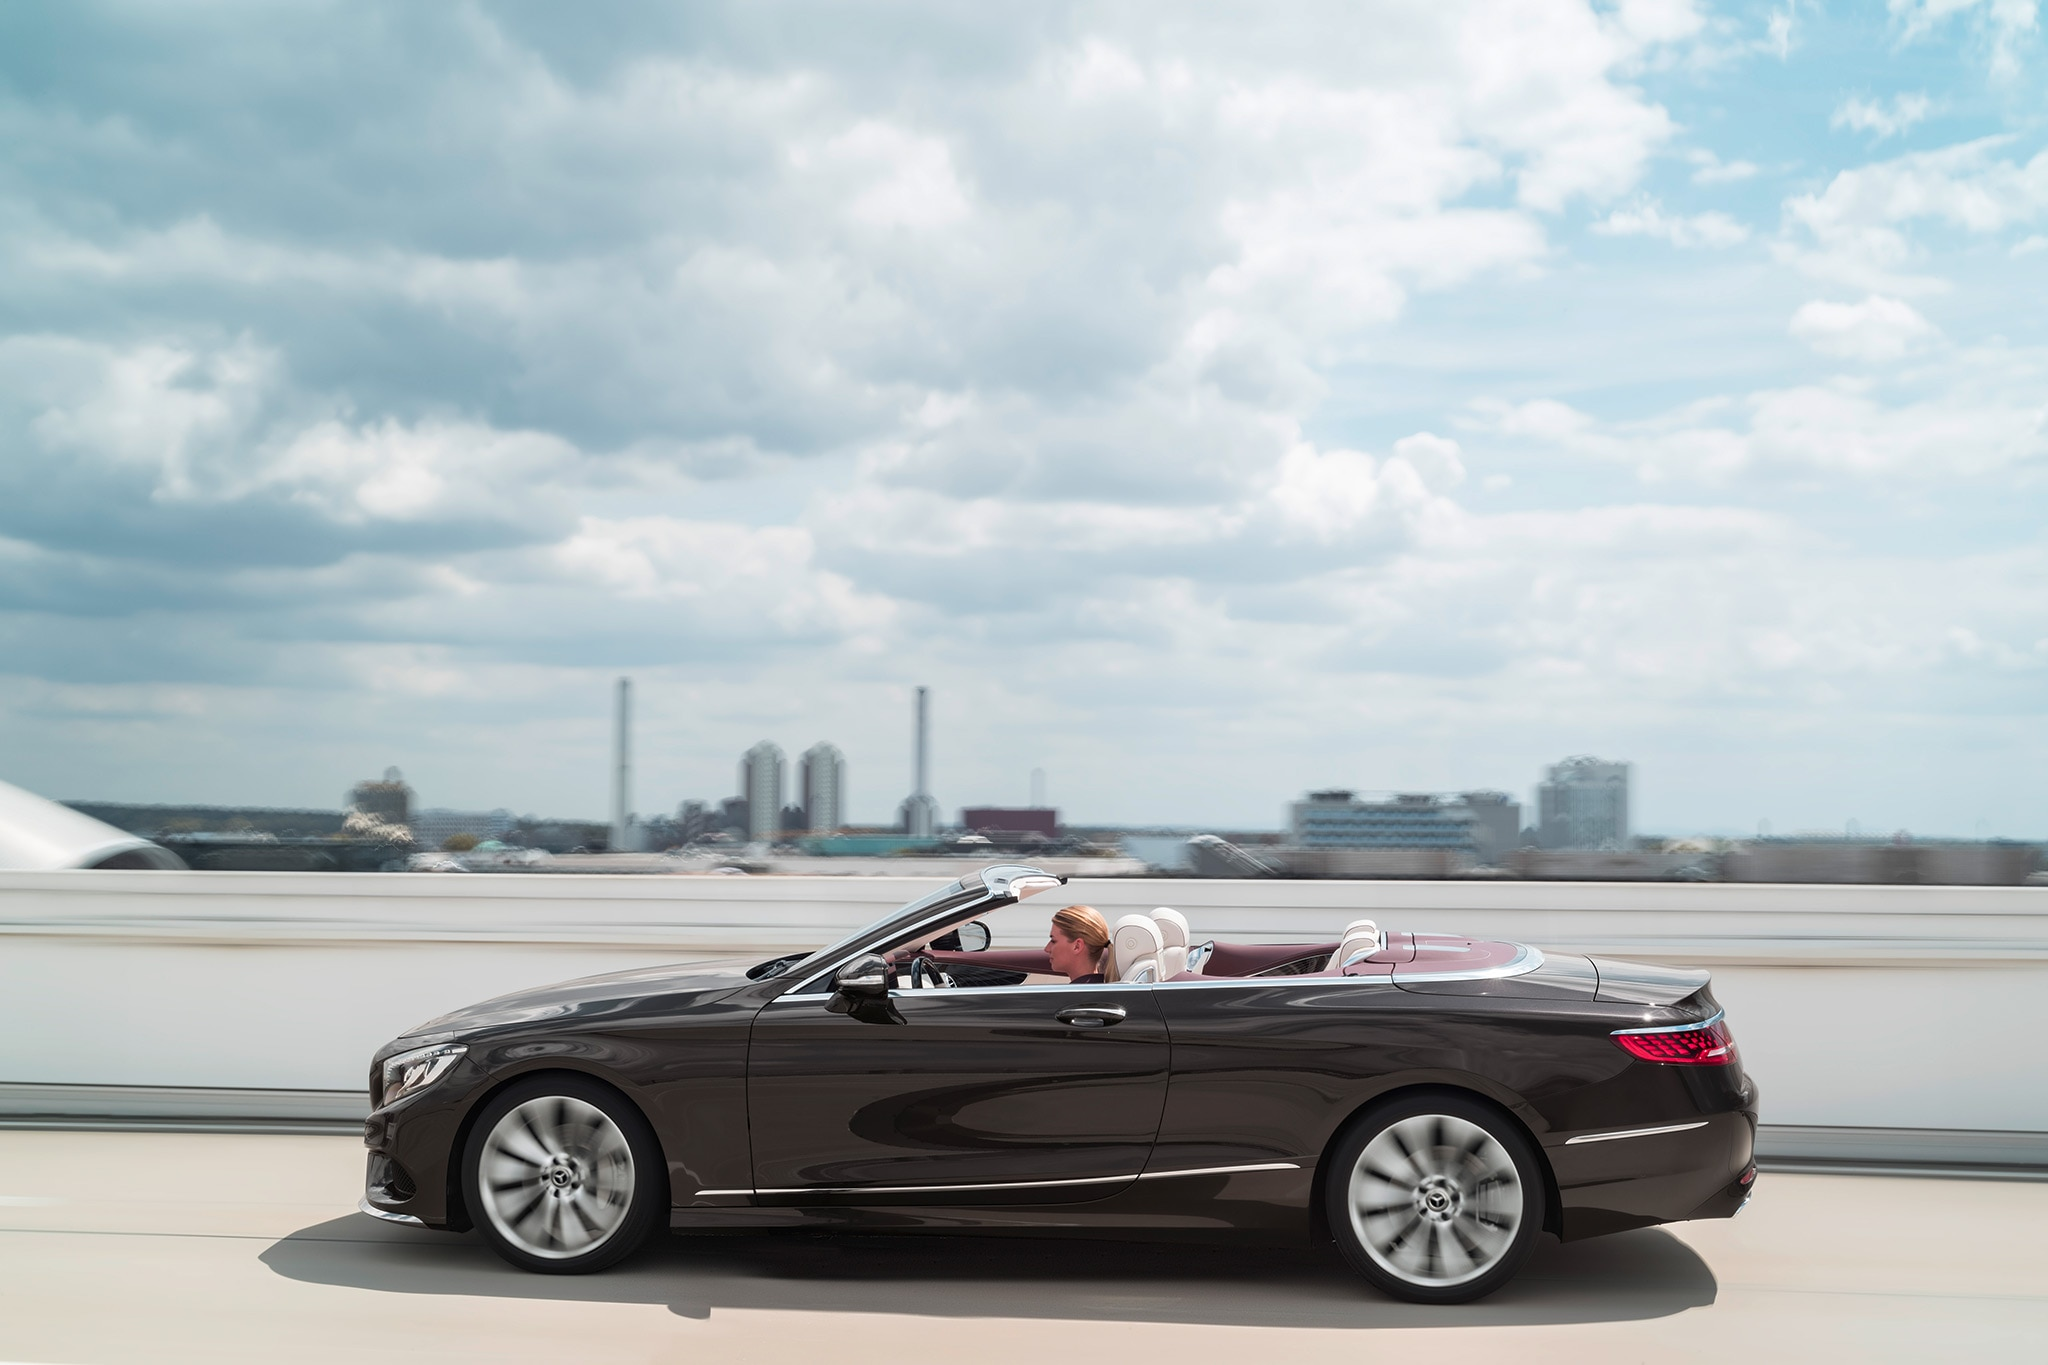 c in benz class new cabriolet inventory ae mercedes convertible amg awd